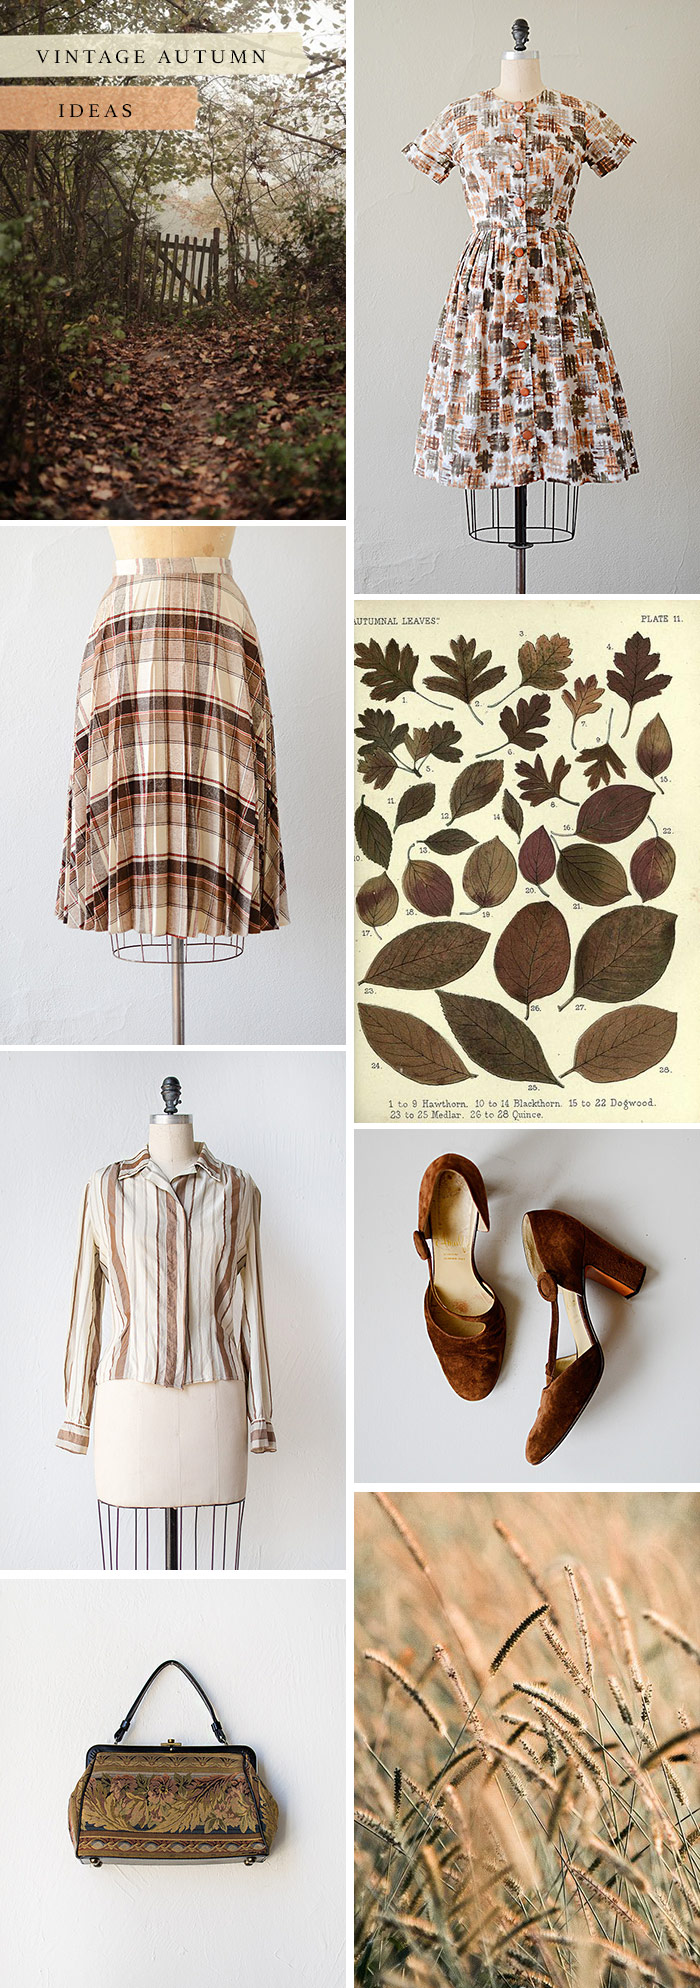 vintage-autumn-ideas